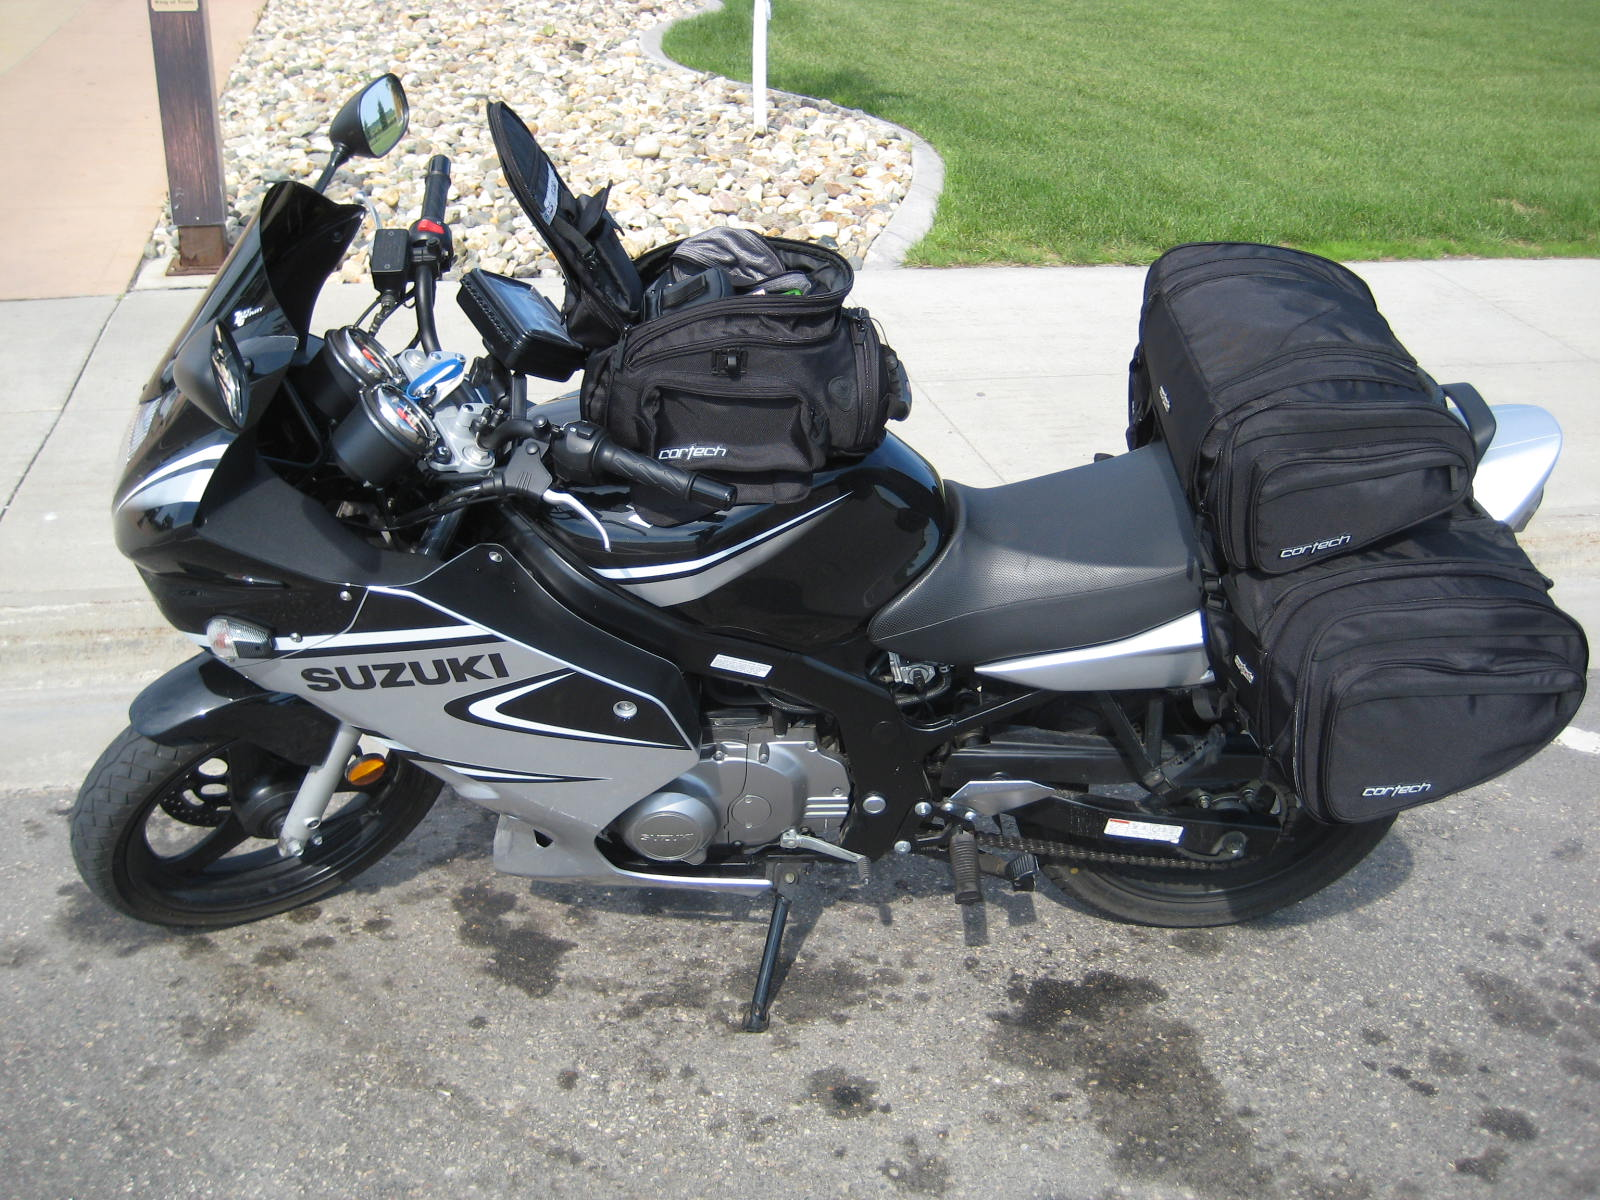 saddle-bags-tail-bag-img_1122.jpg